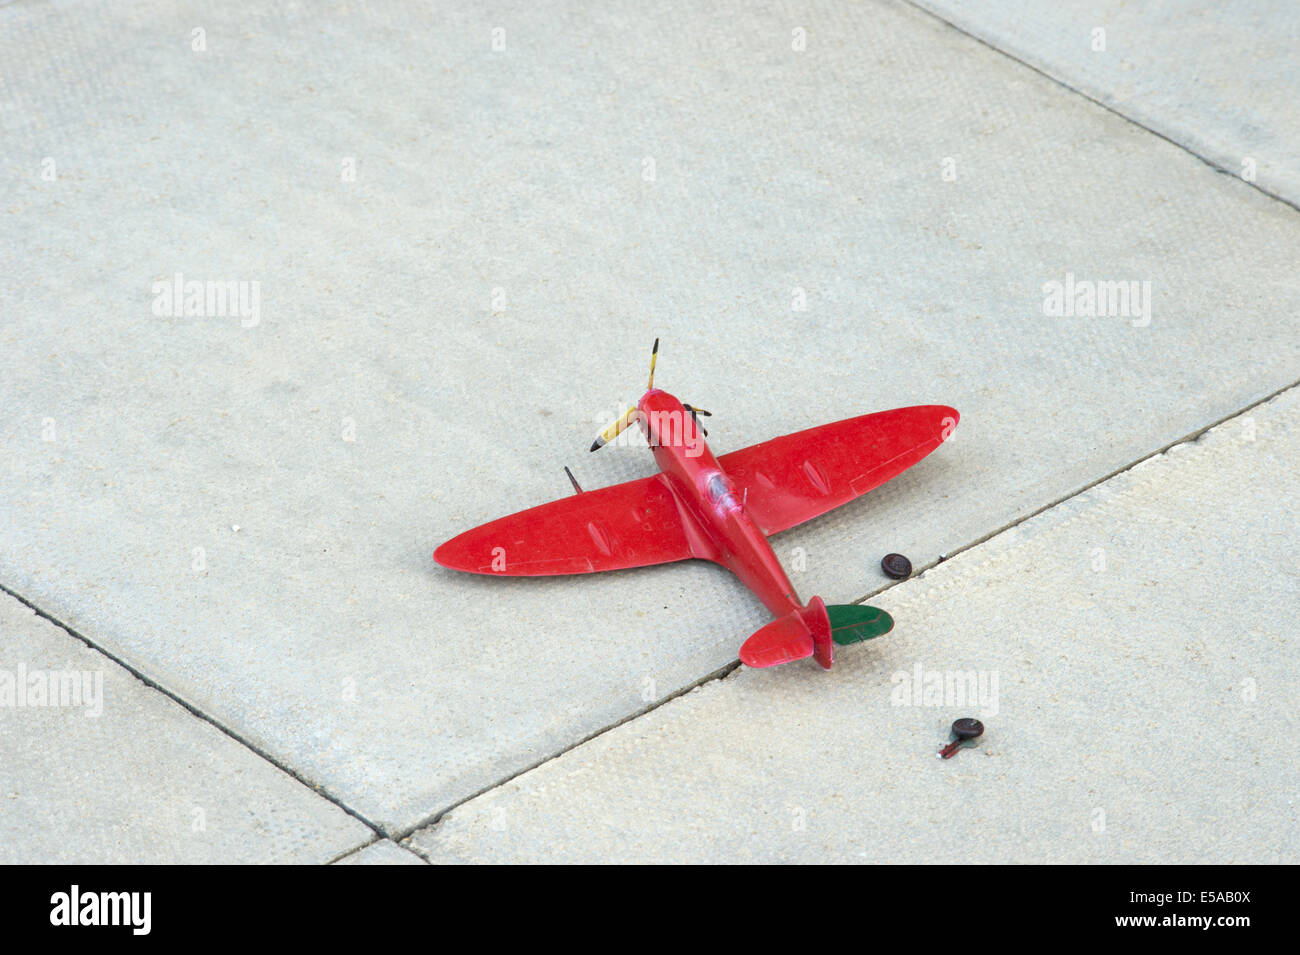 broken red toy spitfire aeroplane aircraft discard paving slab undercarriage ripped off - Stock Image